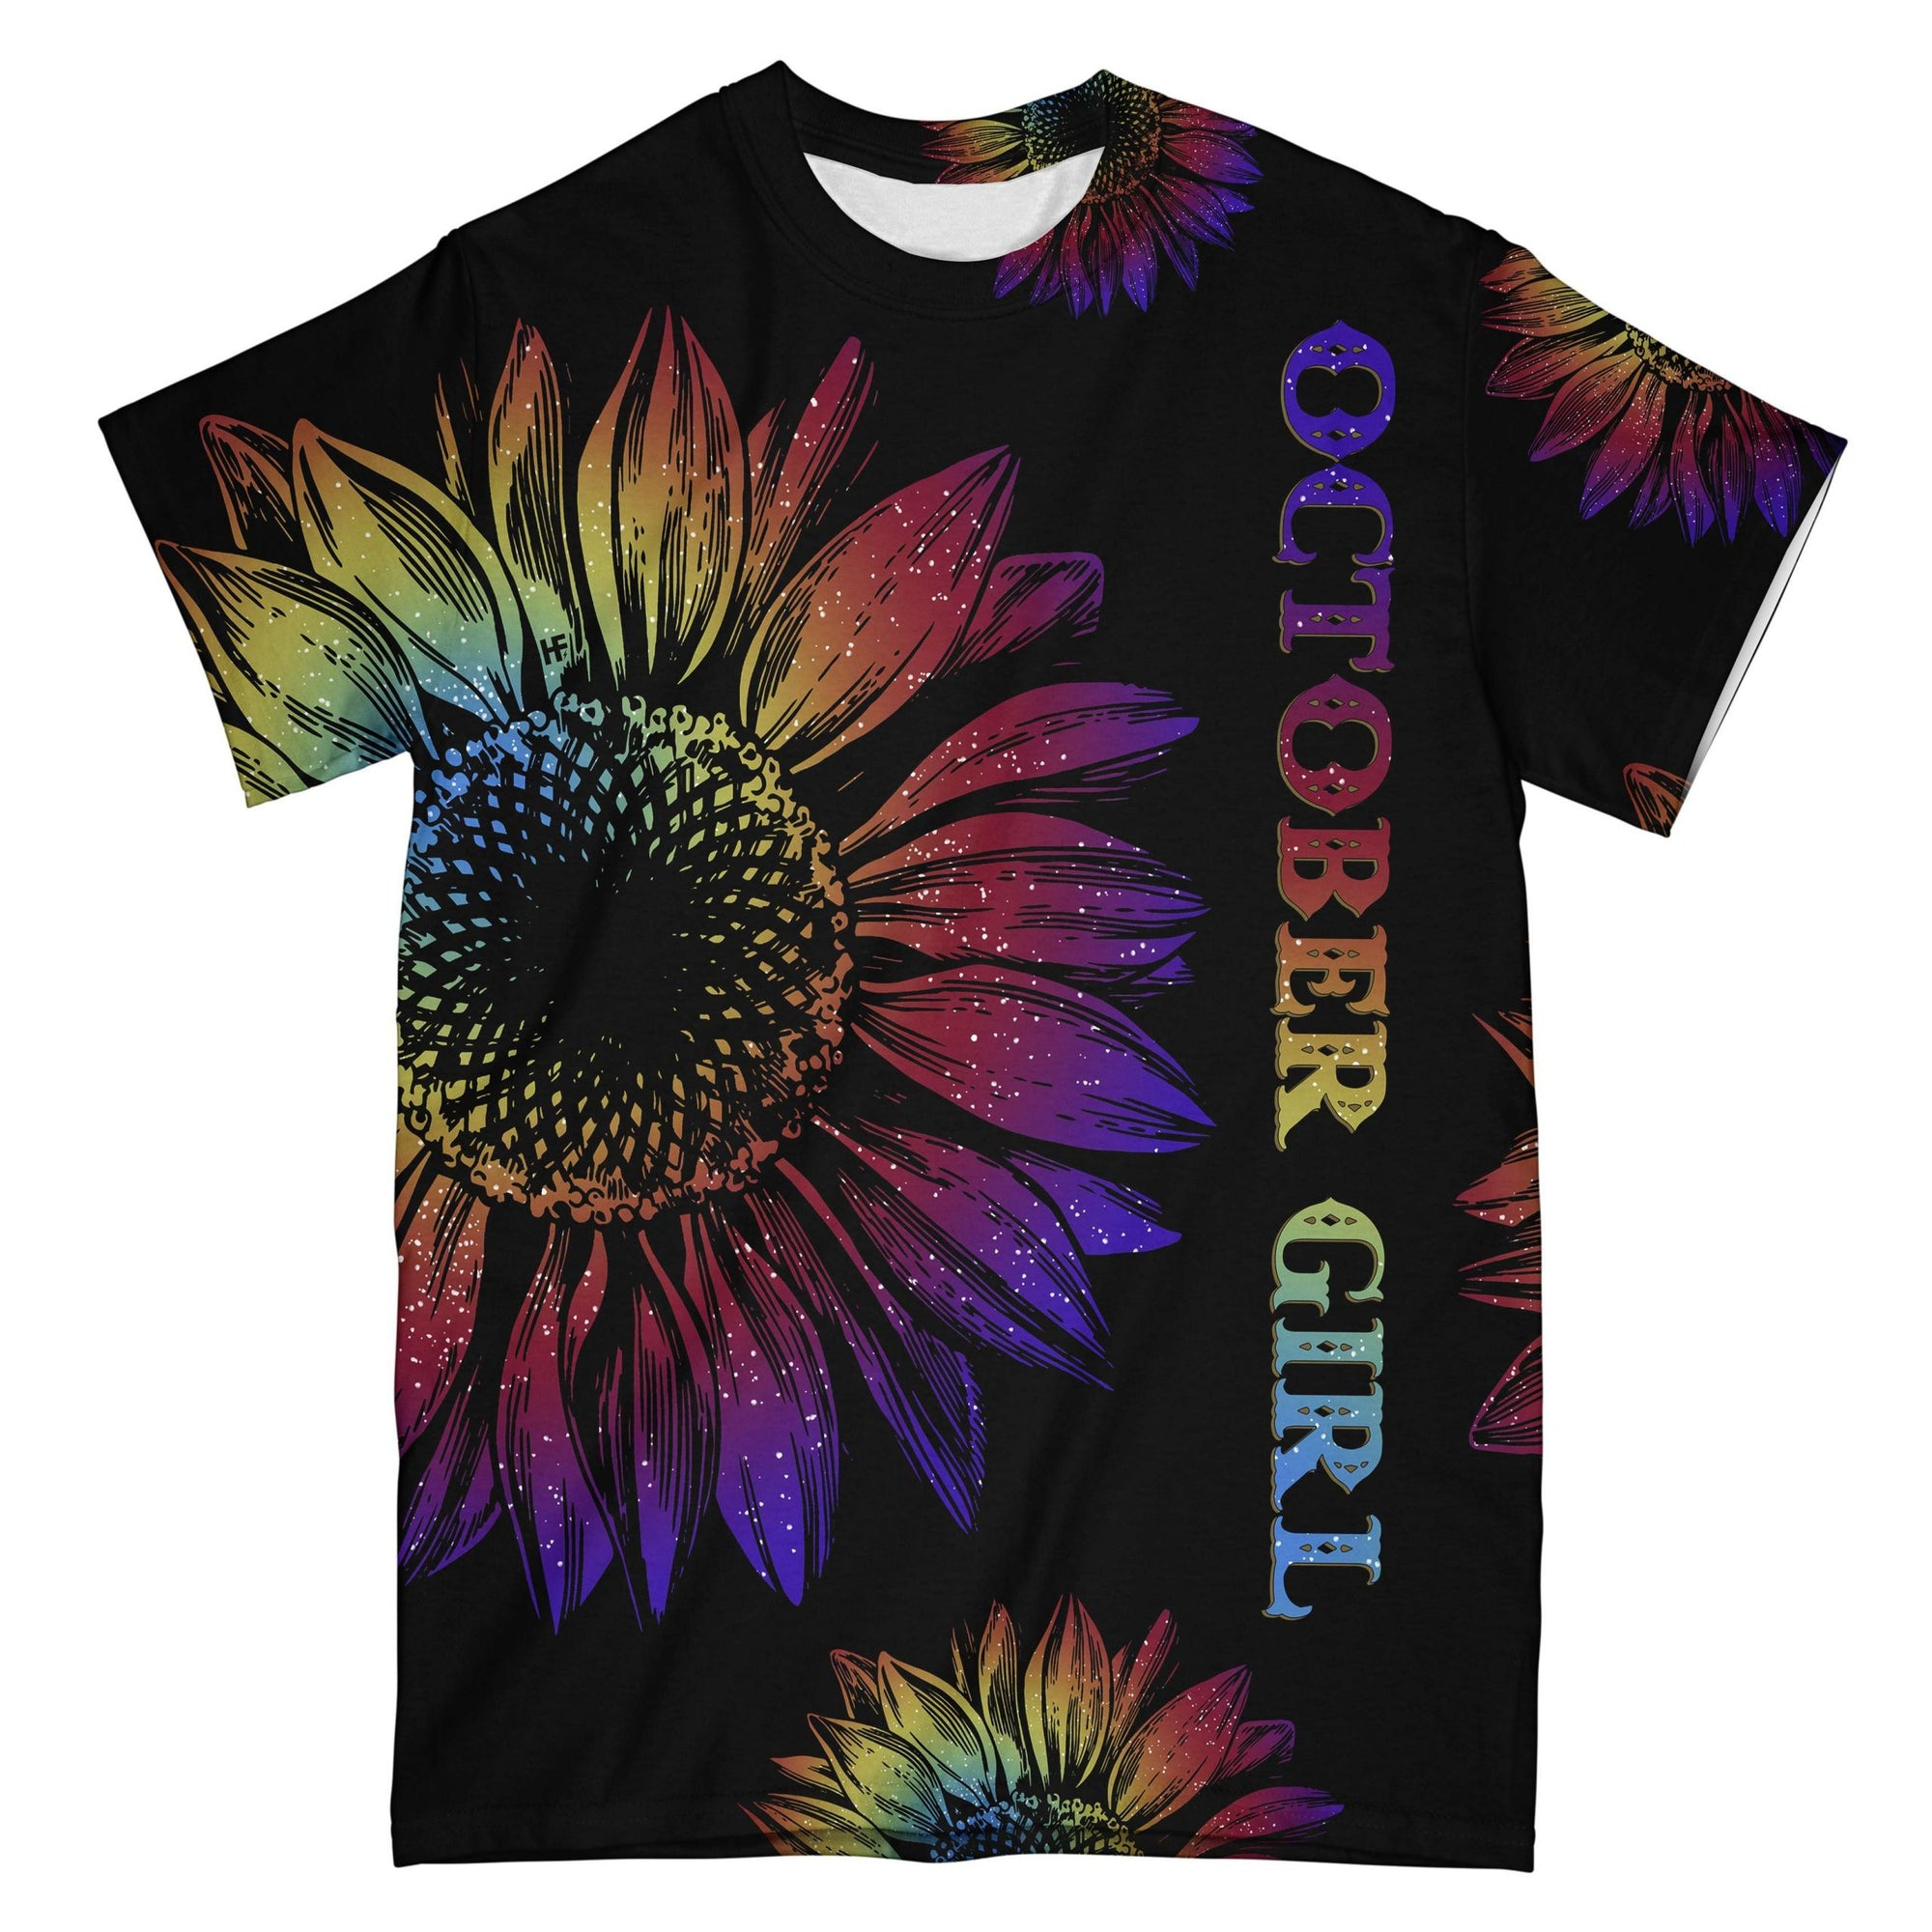 October Girl Tie Dye Sunflower EZ08 2608 All Over T-shirt